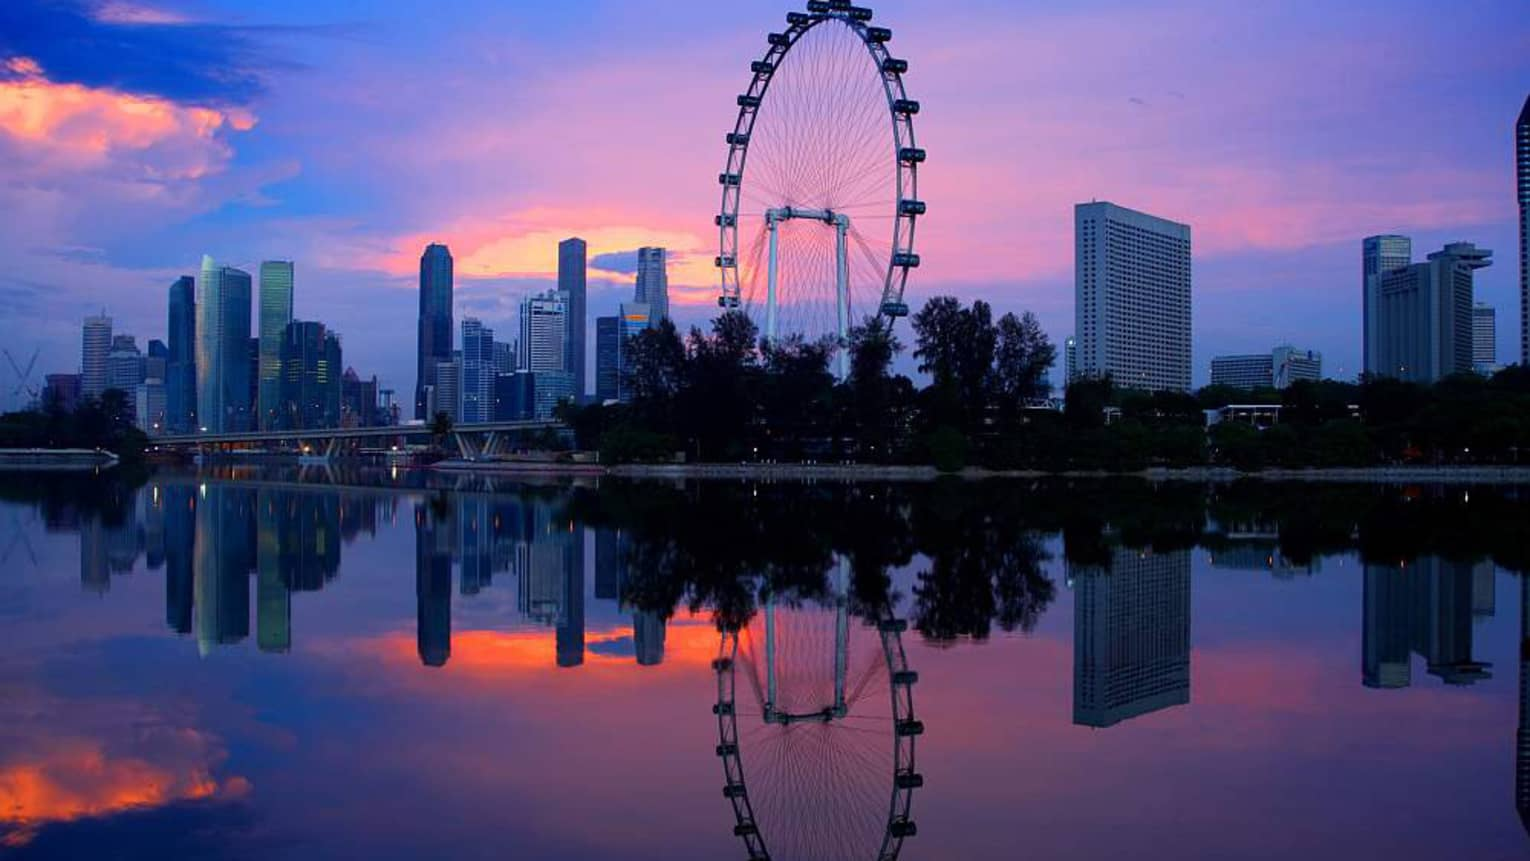 Singapore Flyer reflected in the river with the sunset in the background